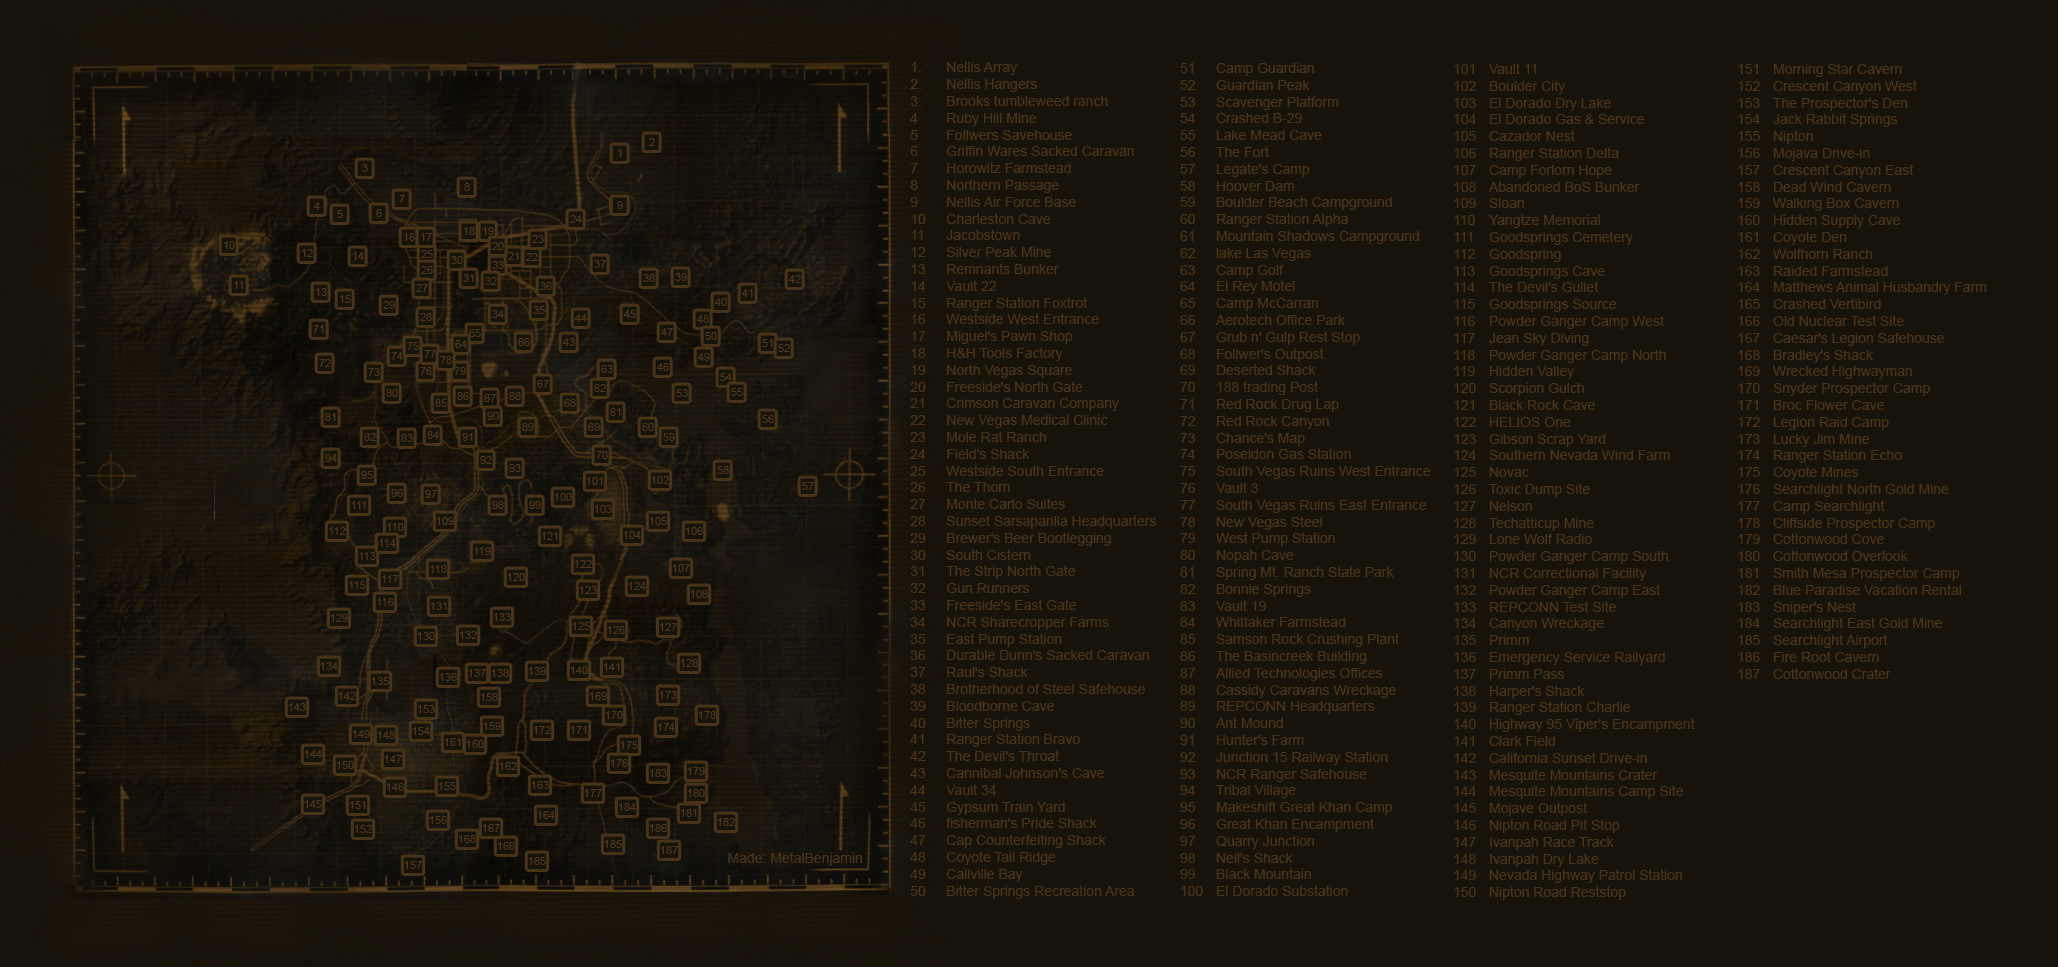 New Vegas World Map.Fallout New Vegas Map With Names At Fallout New Vegas Mods And